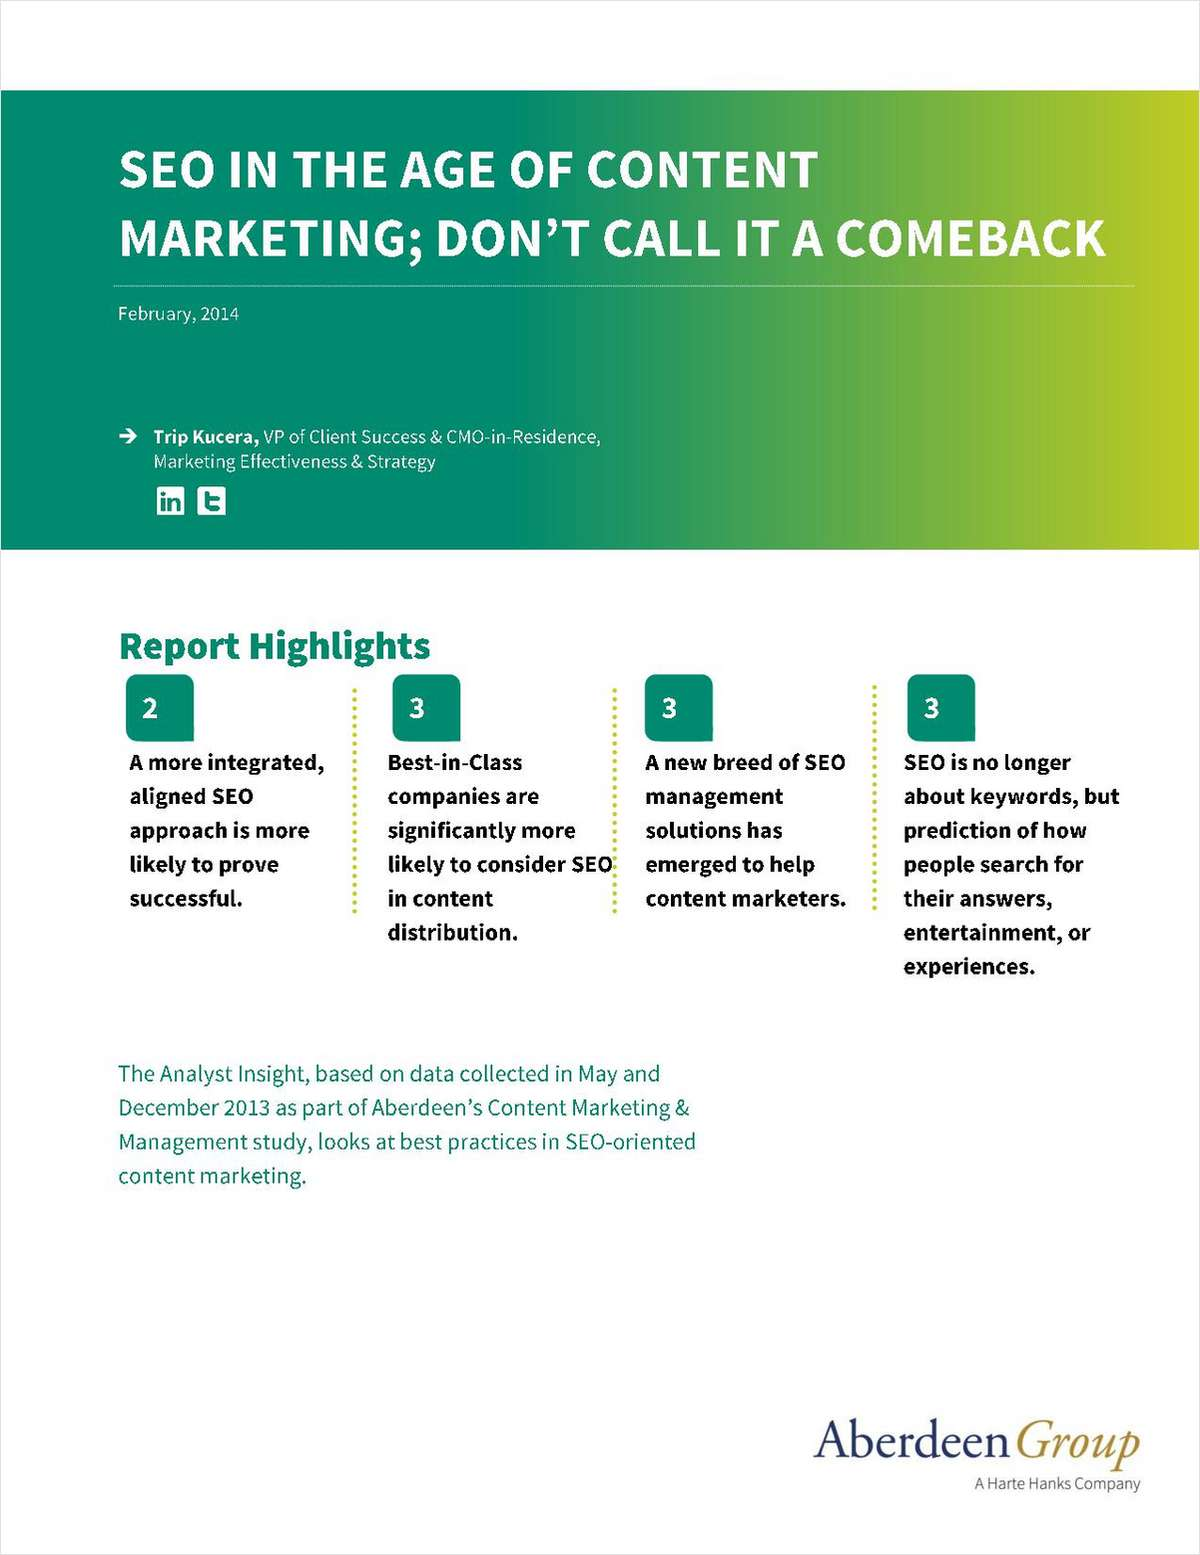 SEO Management in the Age of Content Marketing: Don't Call it a Comeback…